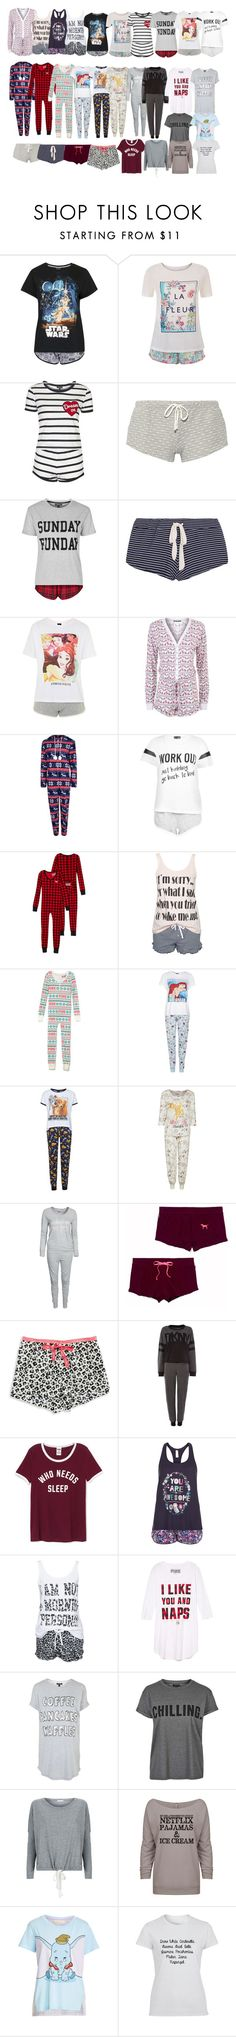 """Pjs"" by rannymarcella ❤ liked on Polyvore featuring Topshop, Accessorize, Eberjey, Wildfox, Rut&Circle, Disney, Hunkemöller, Victoria's Secret, Calvin Klein and DKNY"